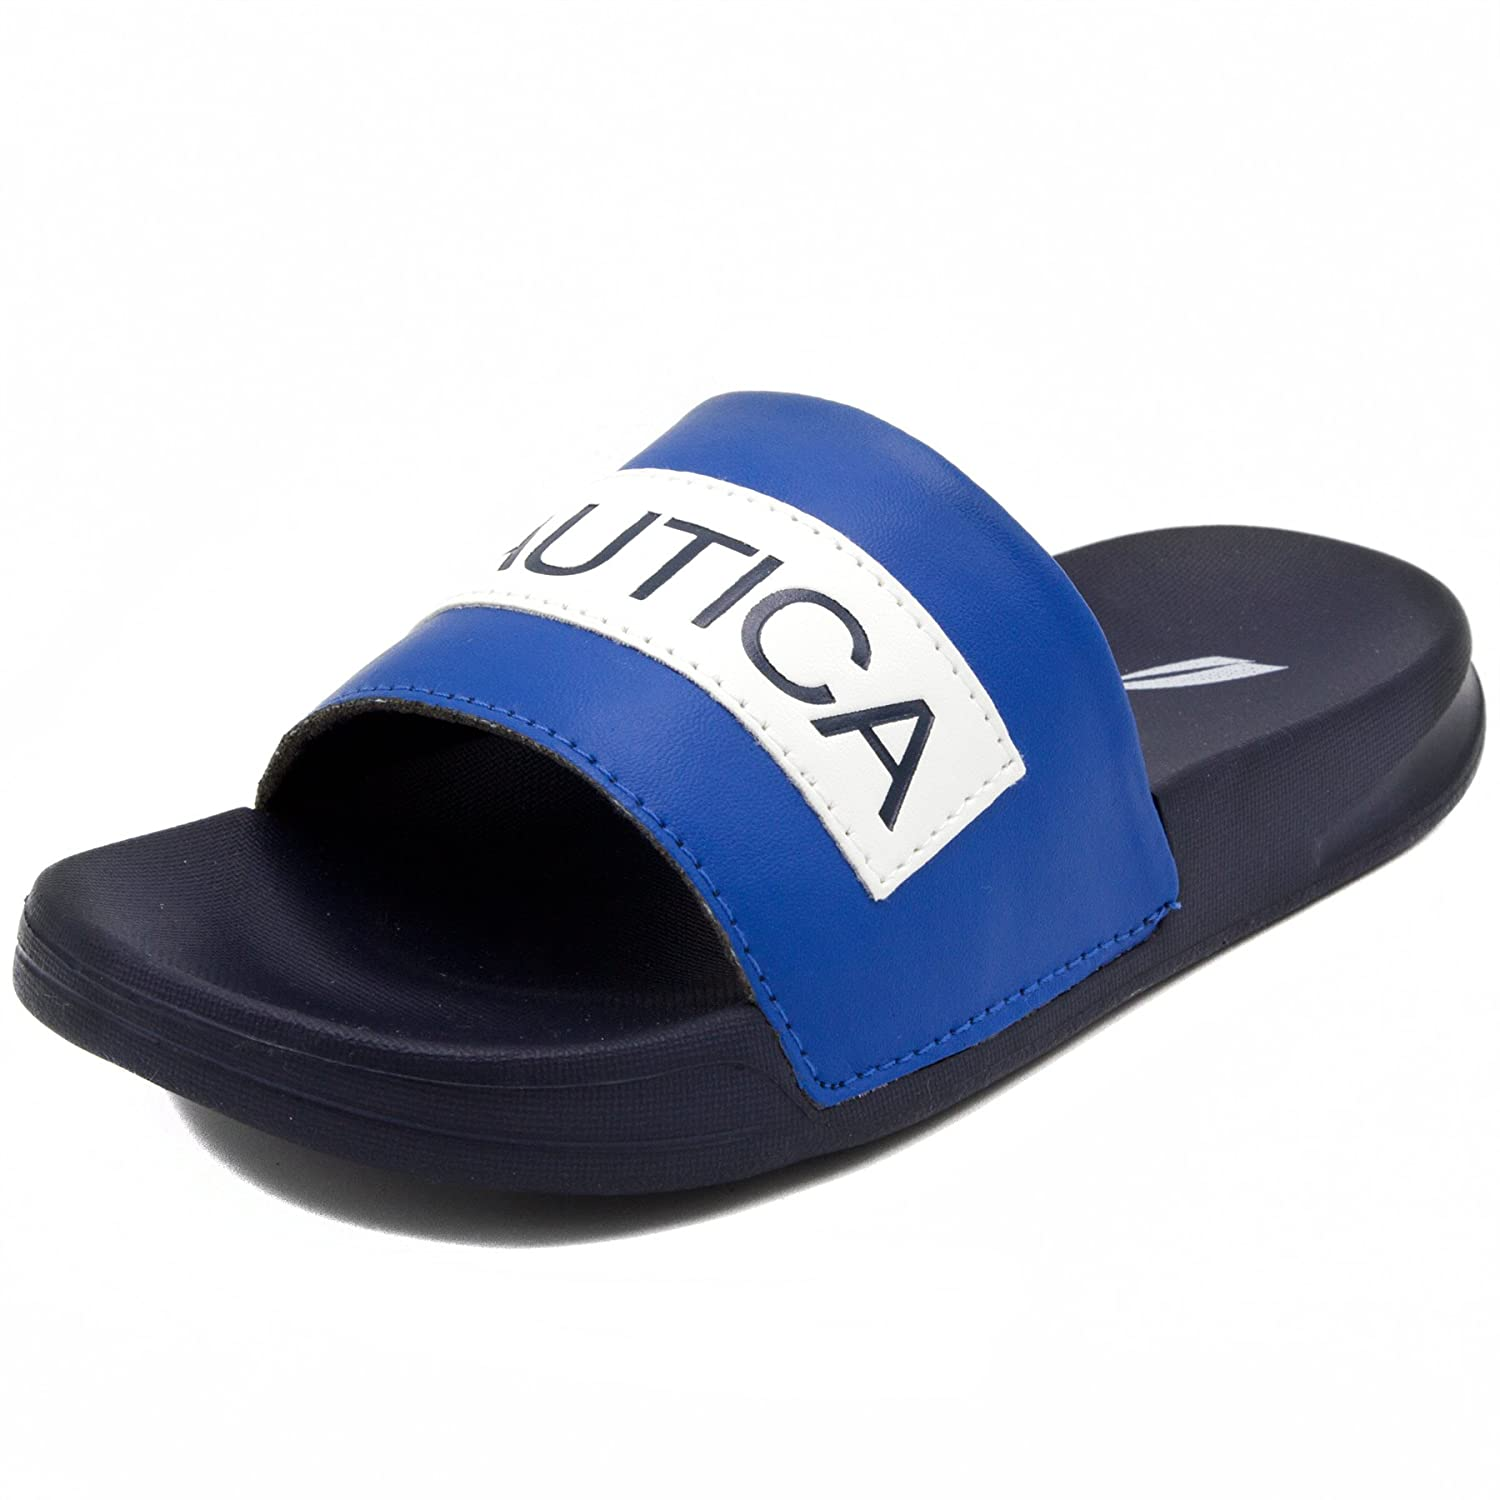 Nautica Kids Slip-On Sandal Athletic Slide